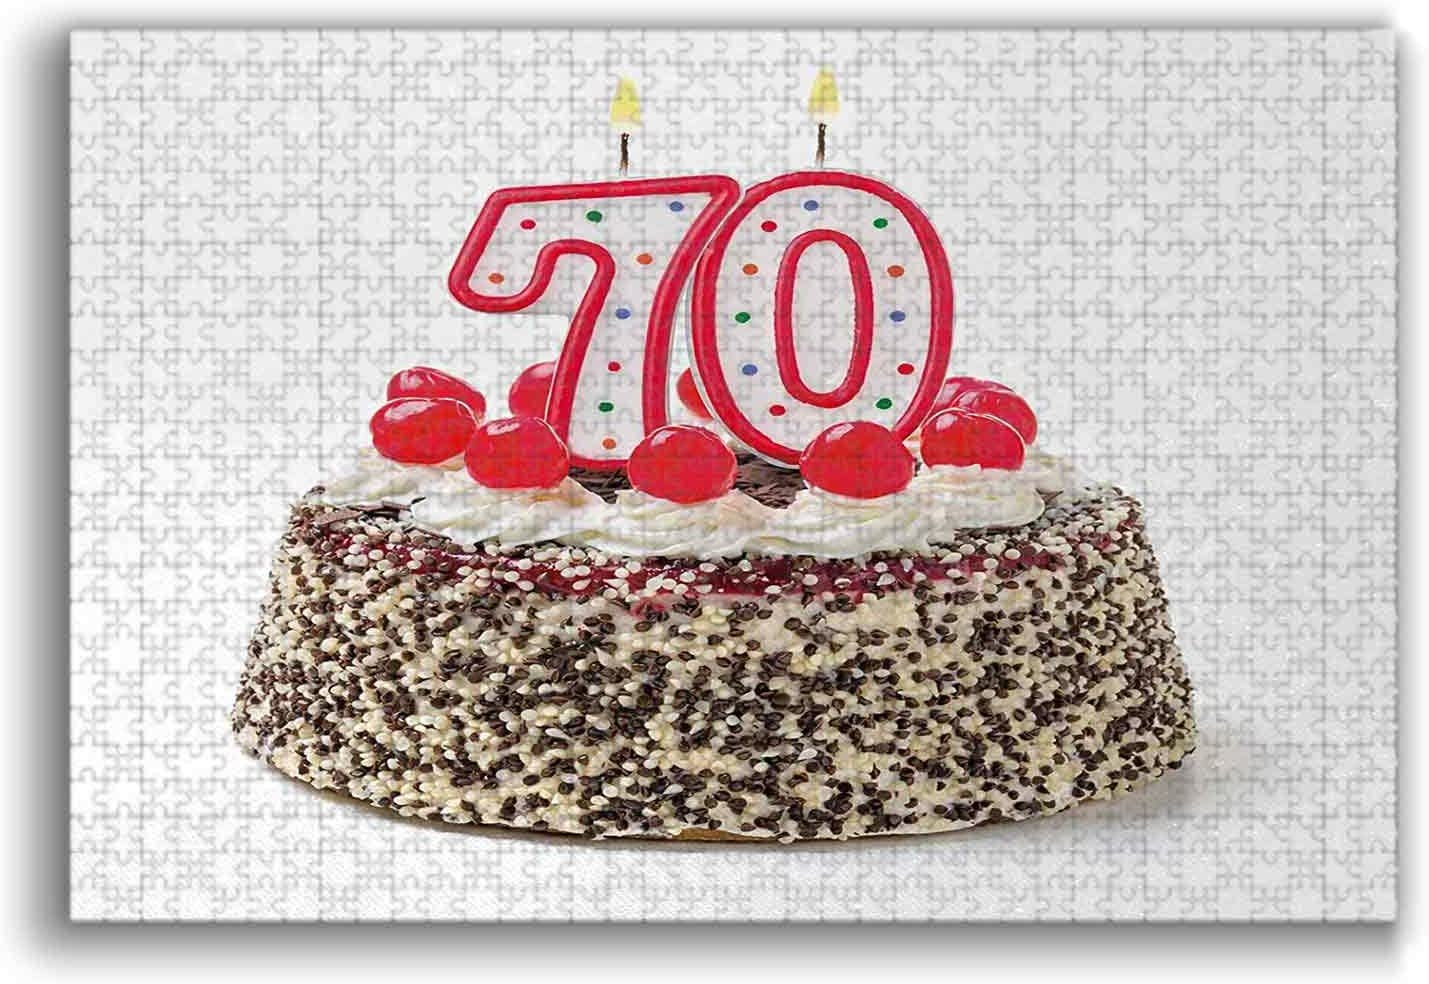 3D Puzzle Birthday Cake with 70 Number Candles and Sprinkles Party Event Photo Image Unique Jigsaw Pieces Every Pieces Fit Together Perfectly Multicolor 1000 Pieces